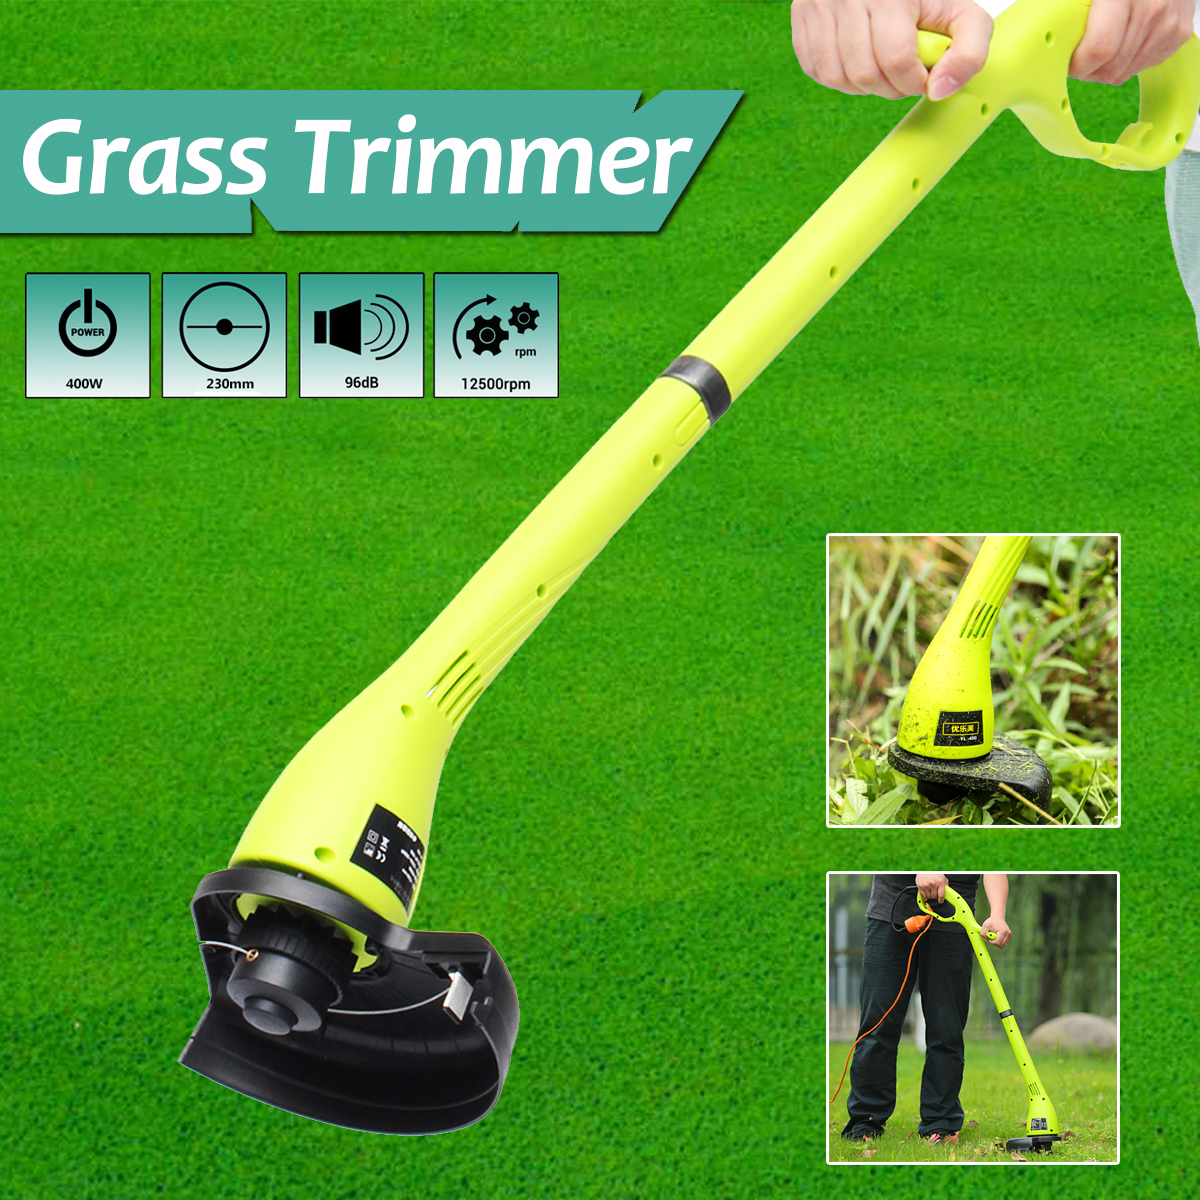 400W Electric Grass Trimmer Strimmer Cutter Lawnmower Heavy Duty Lawn Pruning Machine 230mm